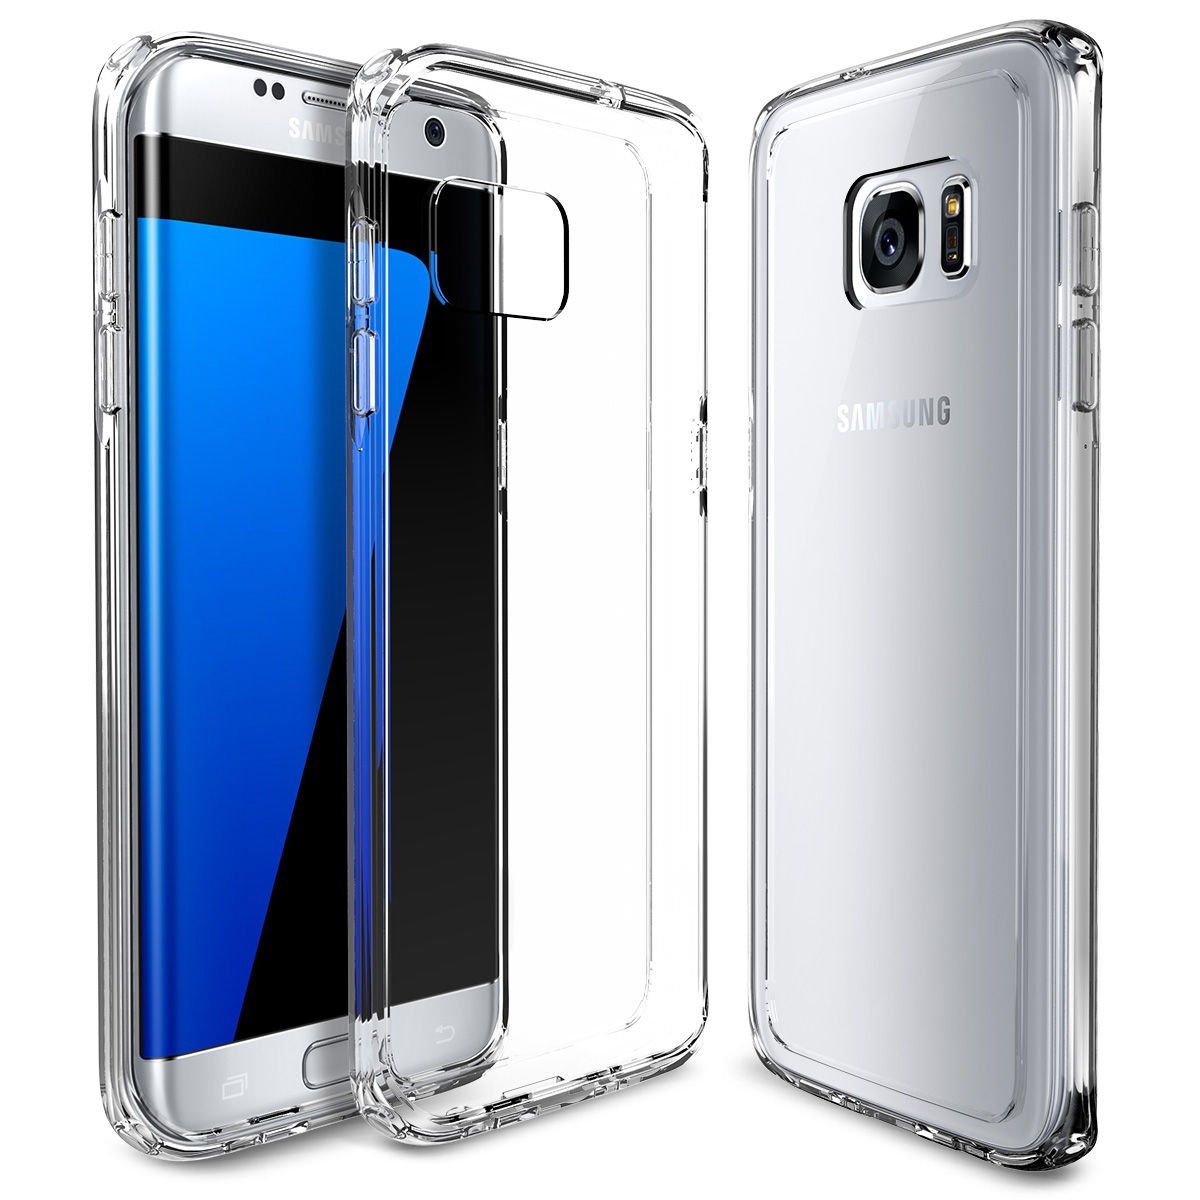 For Samsung Galaxy S7 Edge Case,ULAK [CLEAR SLIM] Premium Transparent Back Shock Absorption Case Cover for Galaxy S7 Edge(China (Mainland))